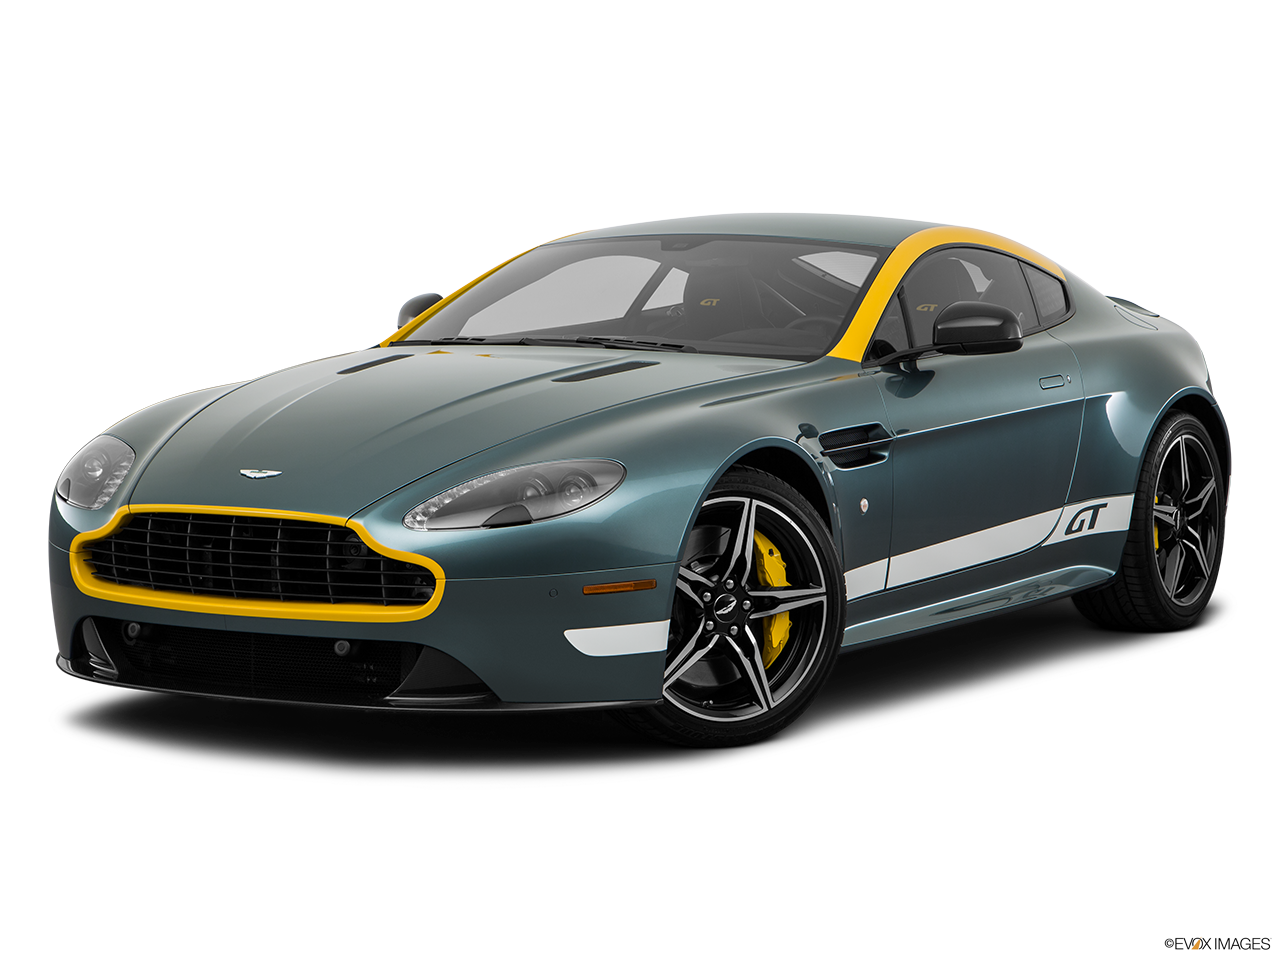 Test Drive A 2016 Aston Martin Vantage at Galpin Aston Martin in Los Angeles